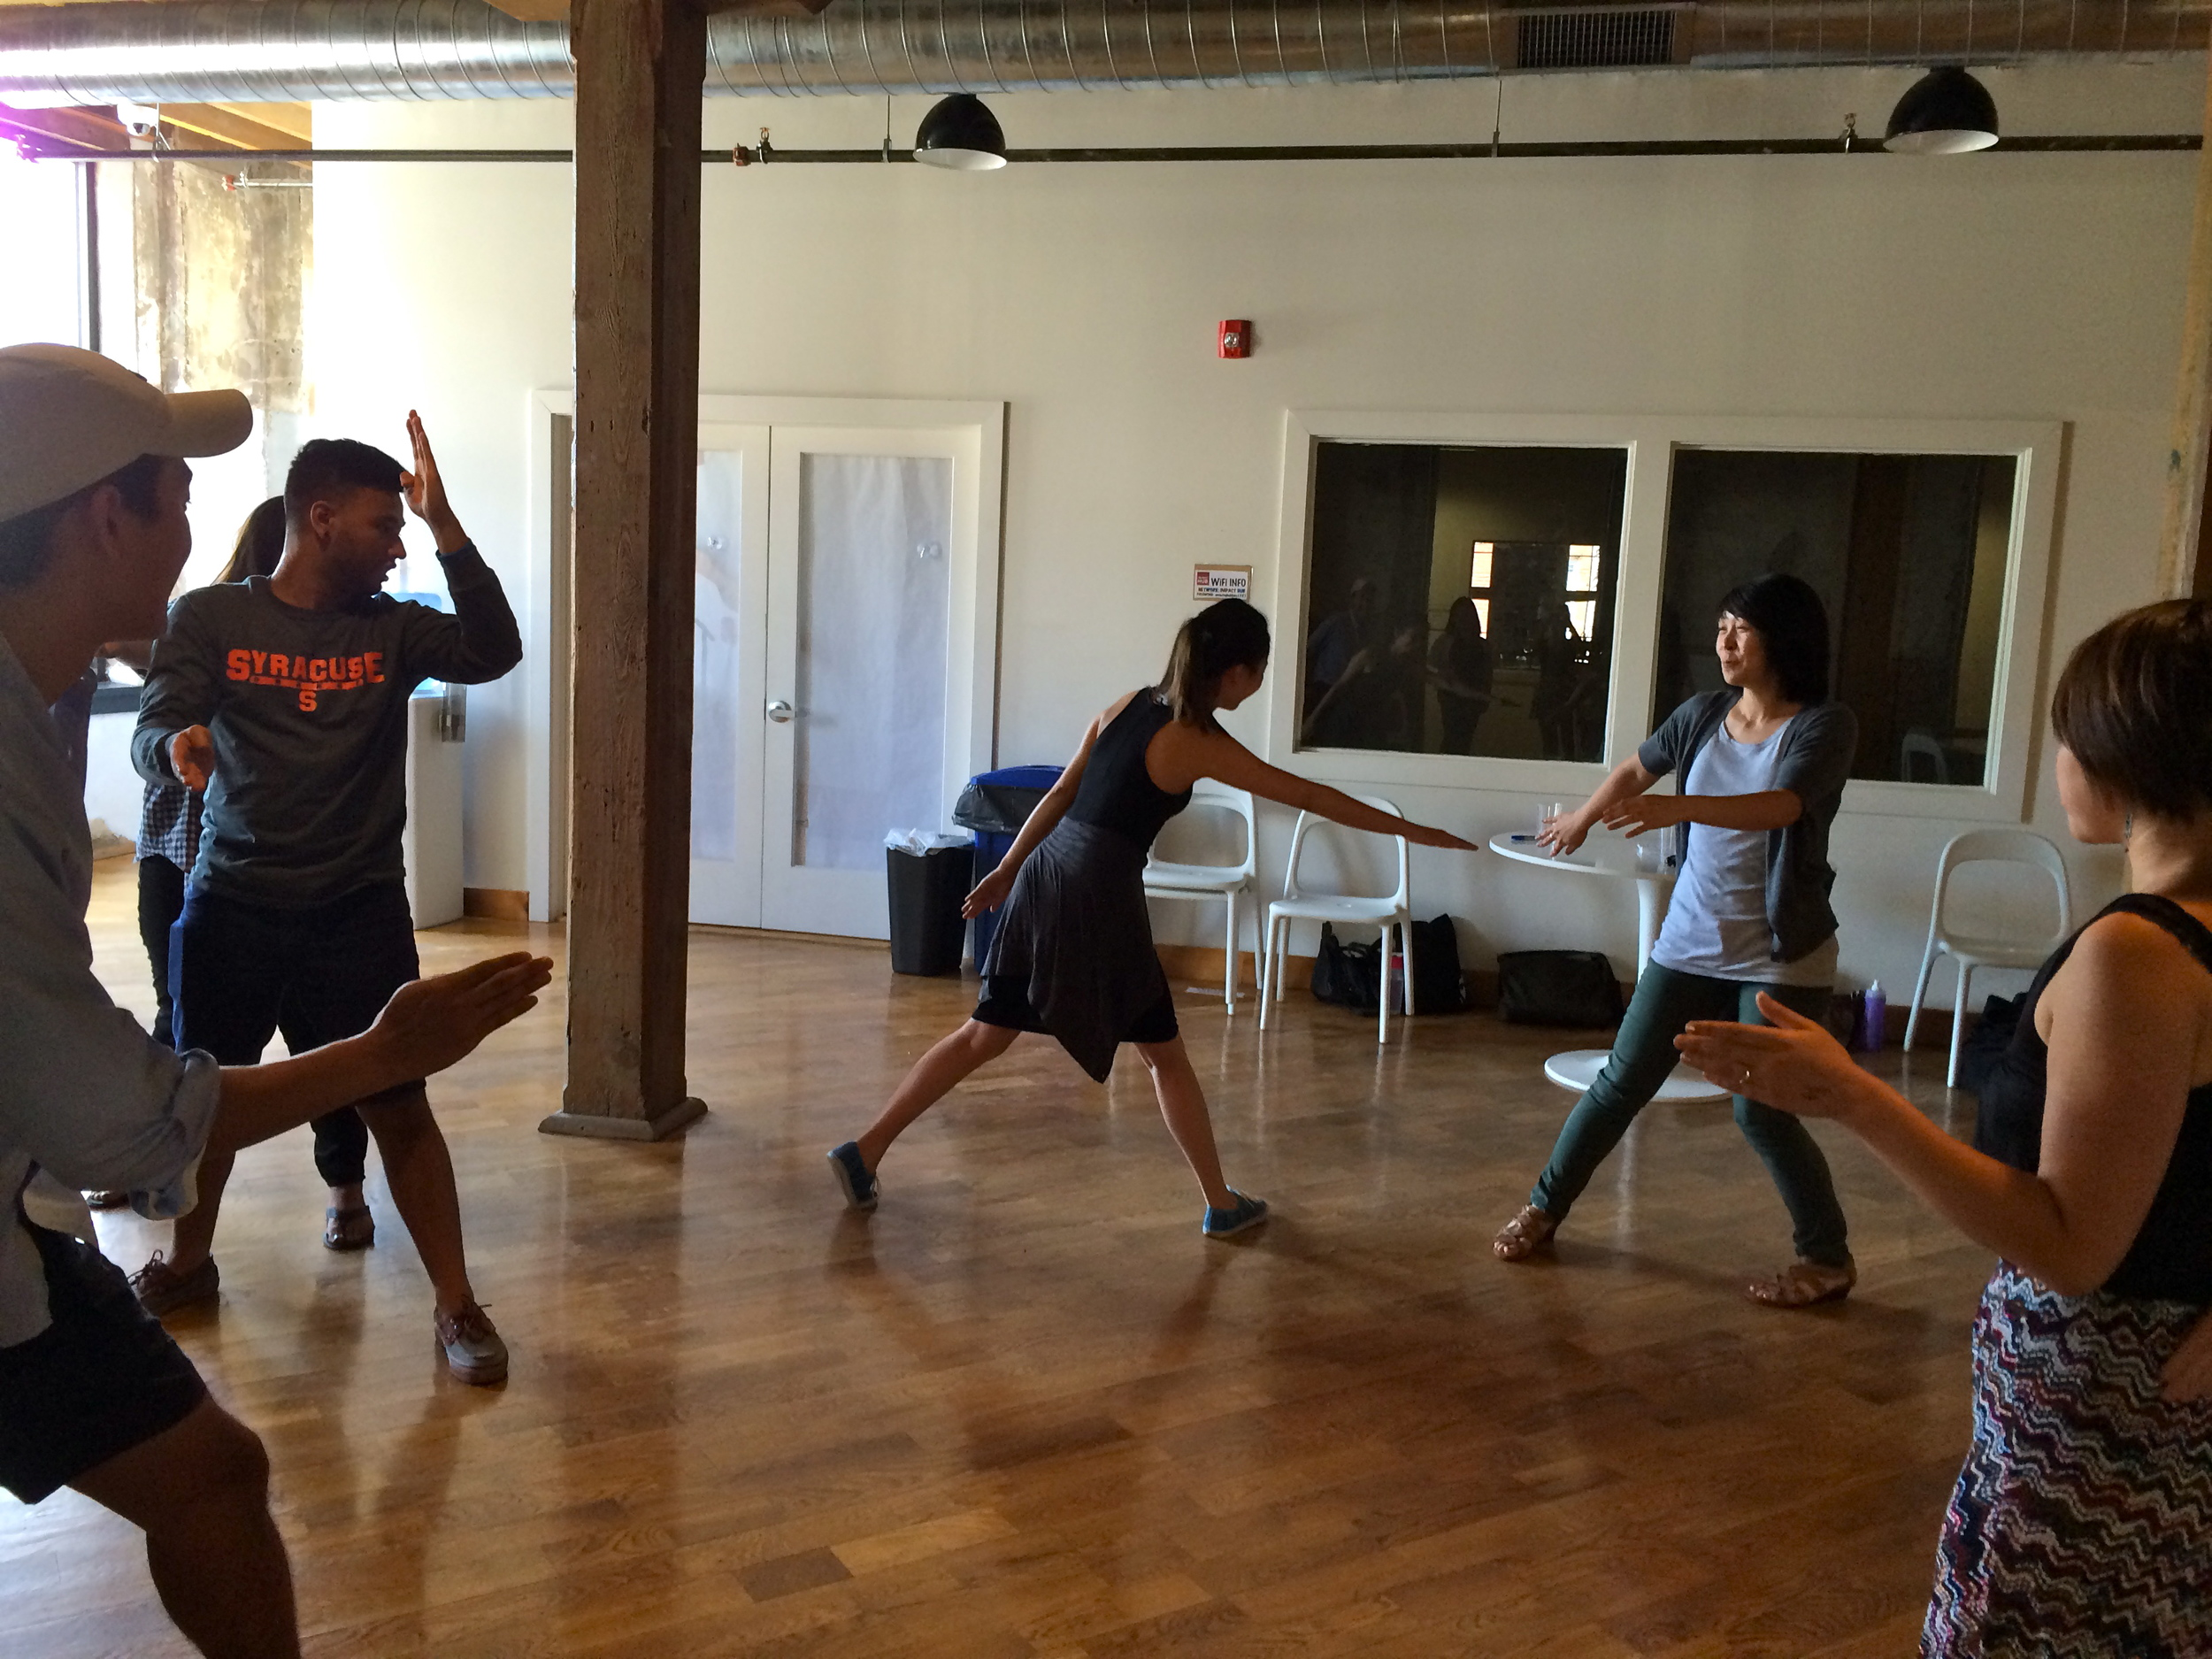 1.This photo shows an exciting game of Ninja that we played the first day of Fellows training back in August. From the first few moments I knew that I was going to be working with an awesome group of fun, upbeat people in an environment that fosters silliness and creativity.